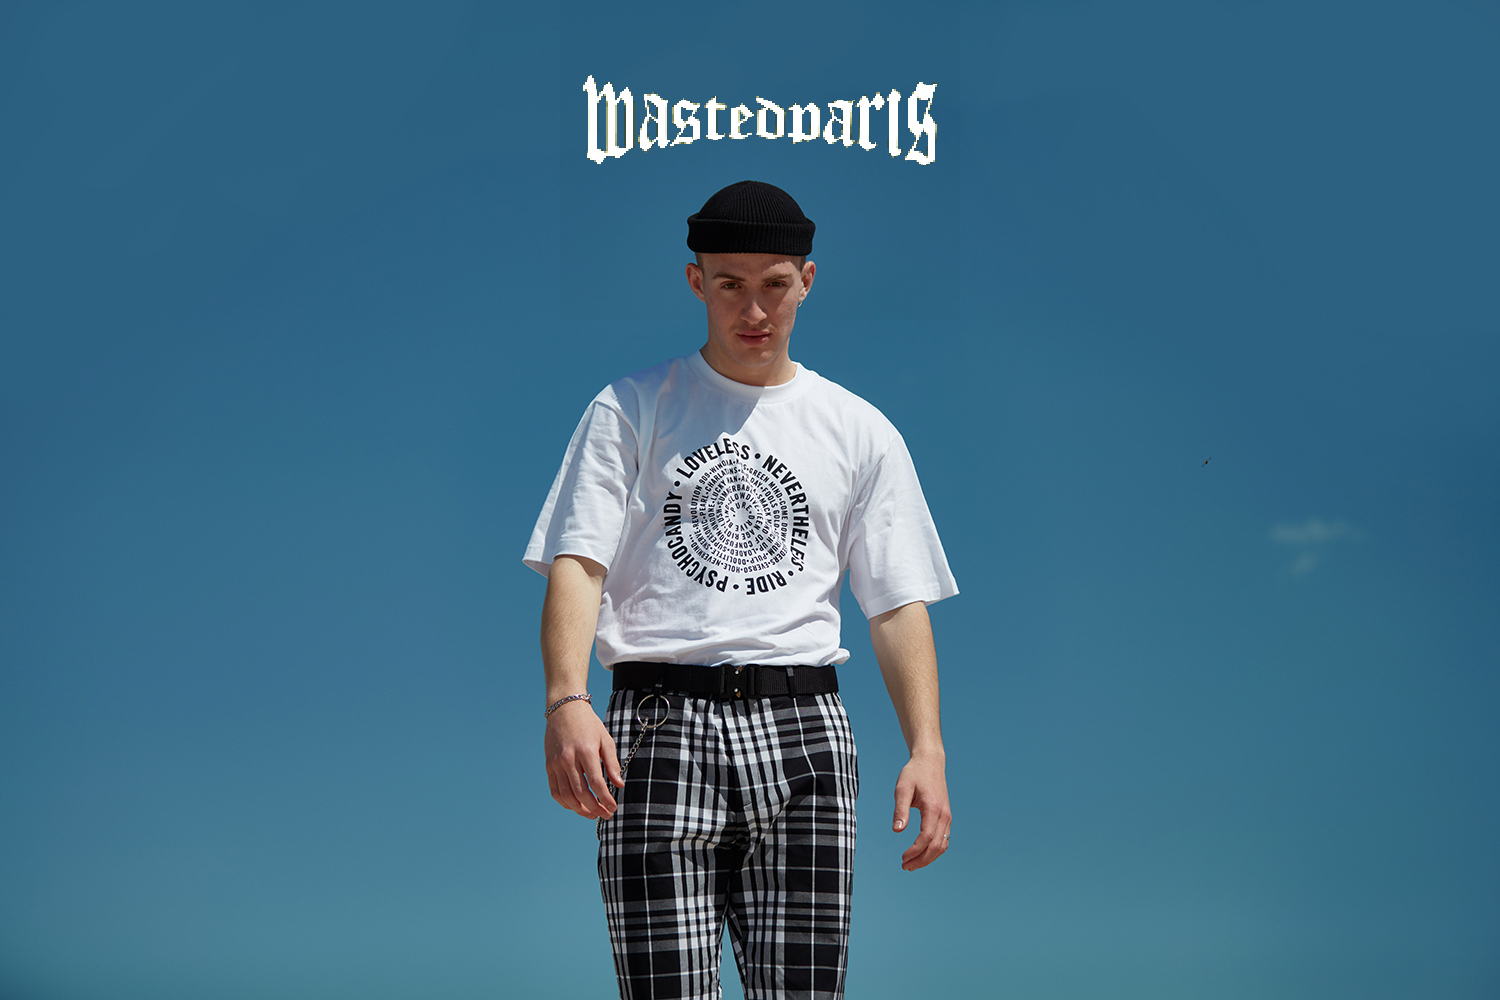 Wastedparis